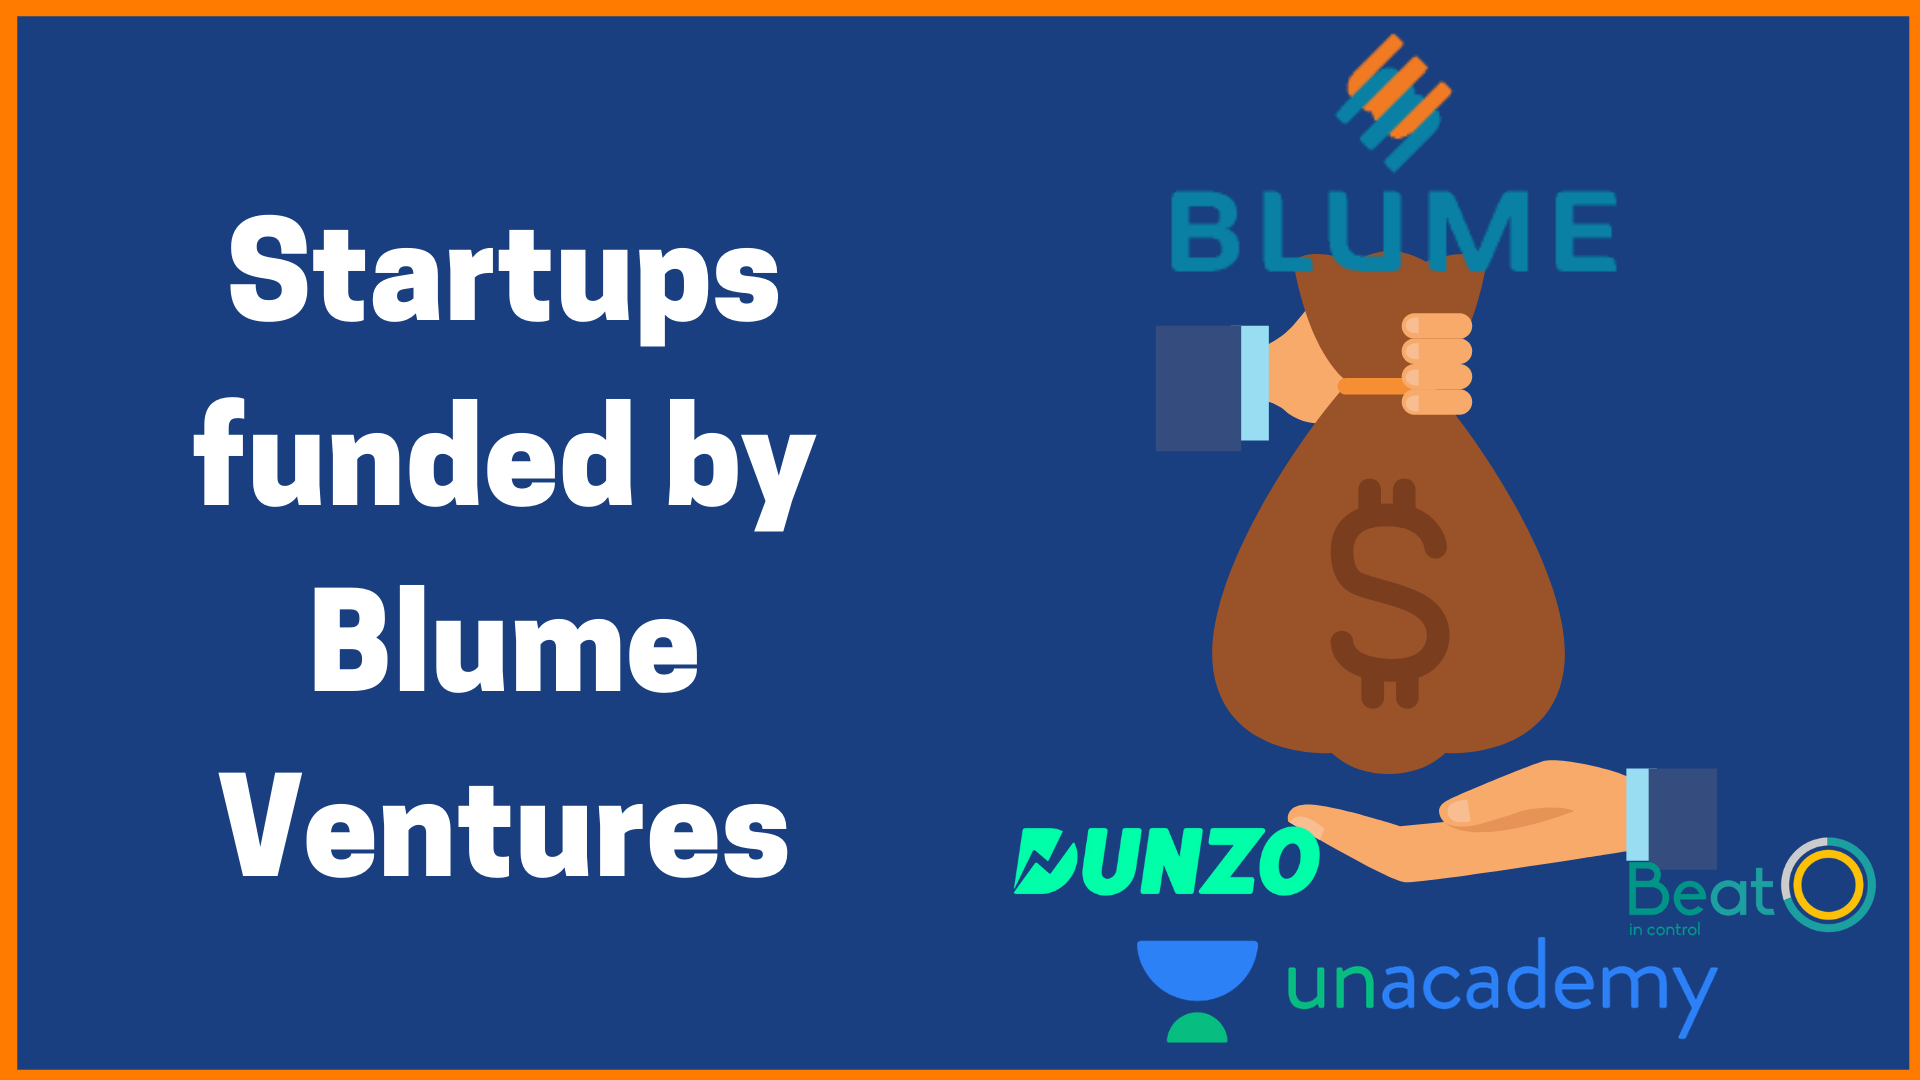 Startups Funded by Blume Ventures